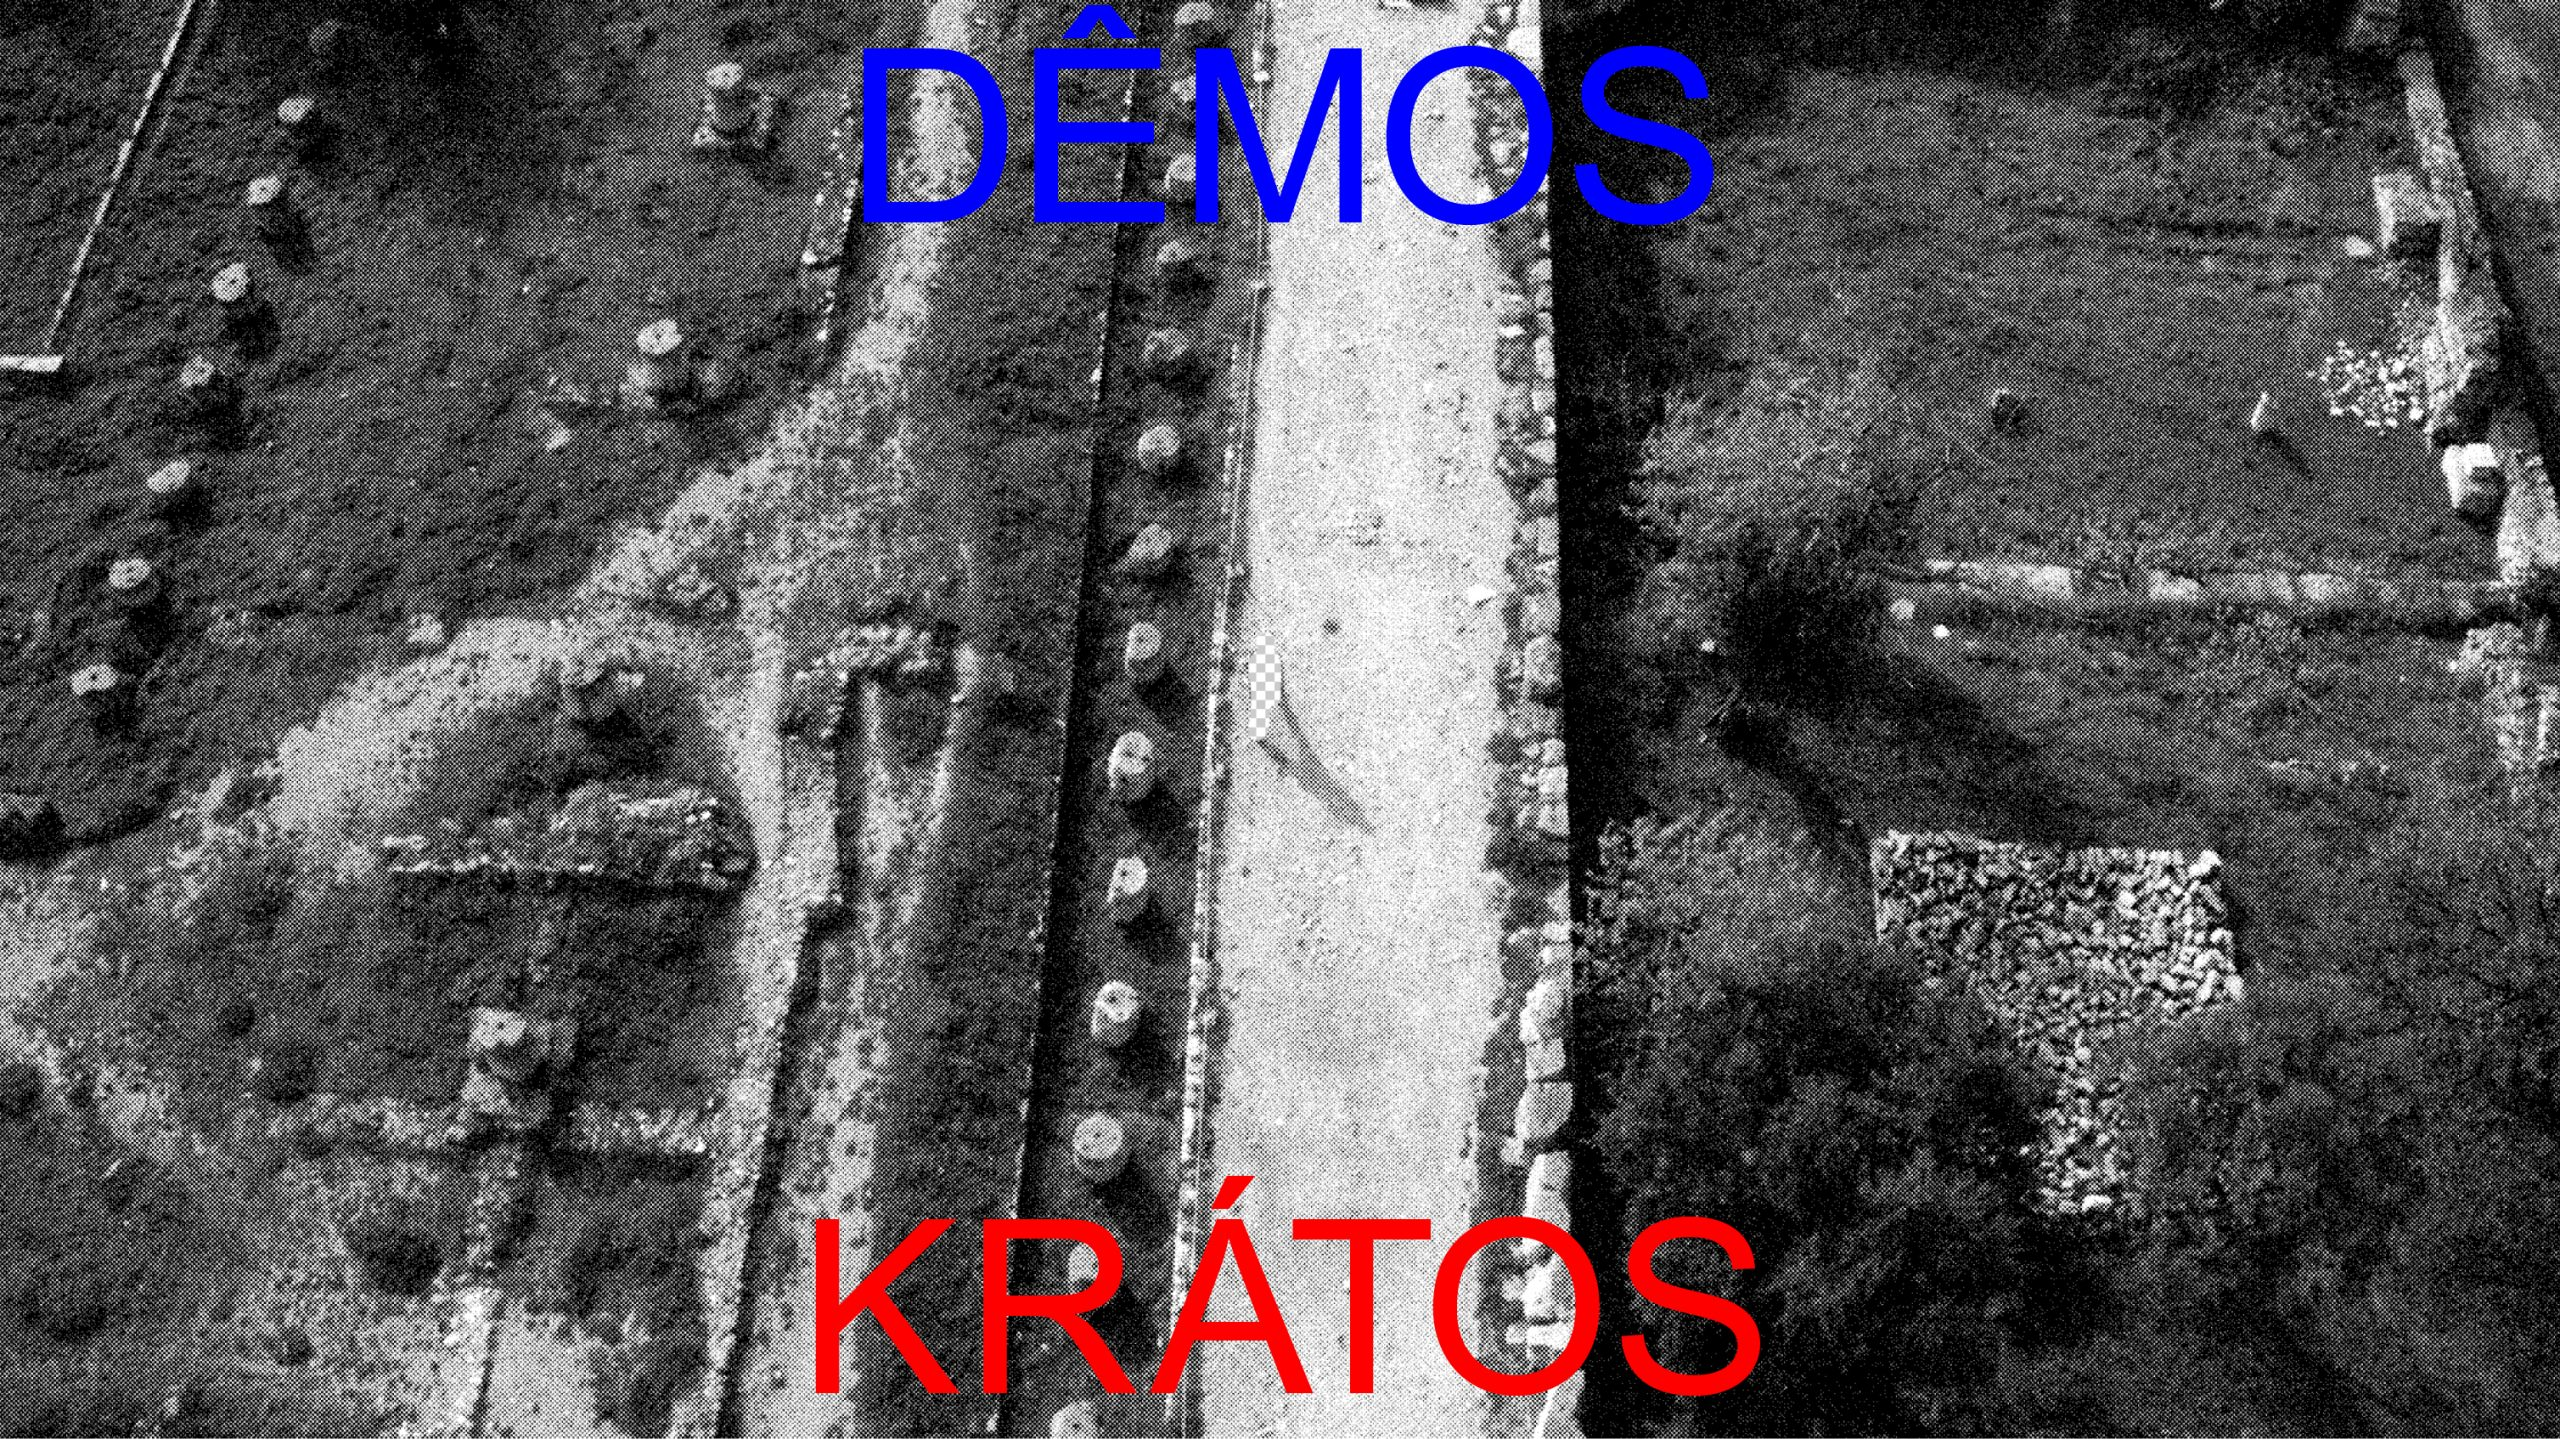 What to do with a broken democracy: Ostracism and other lessons from Athens